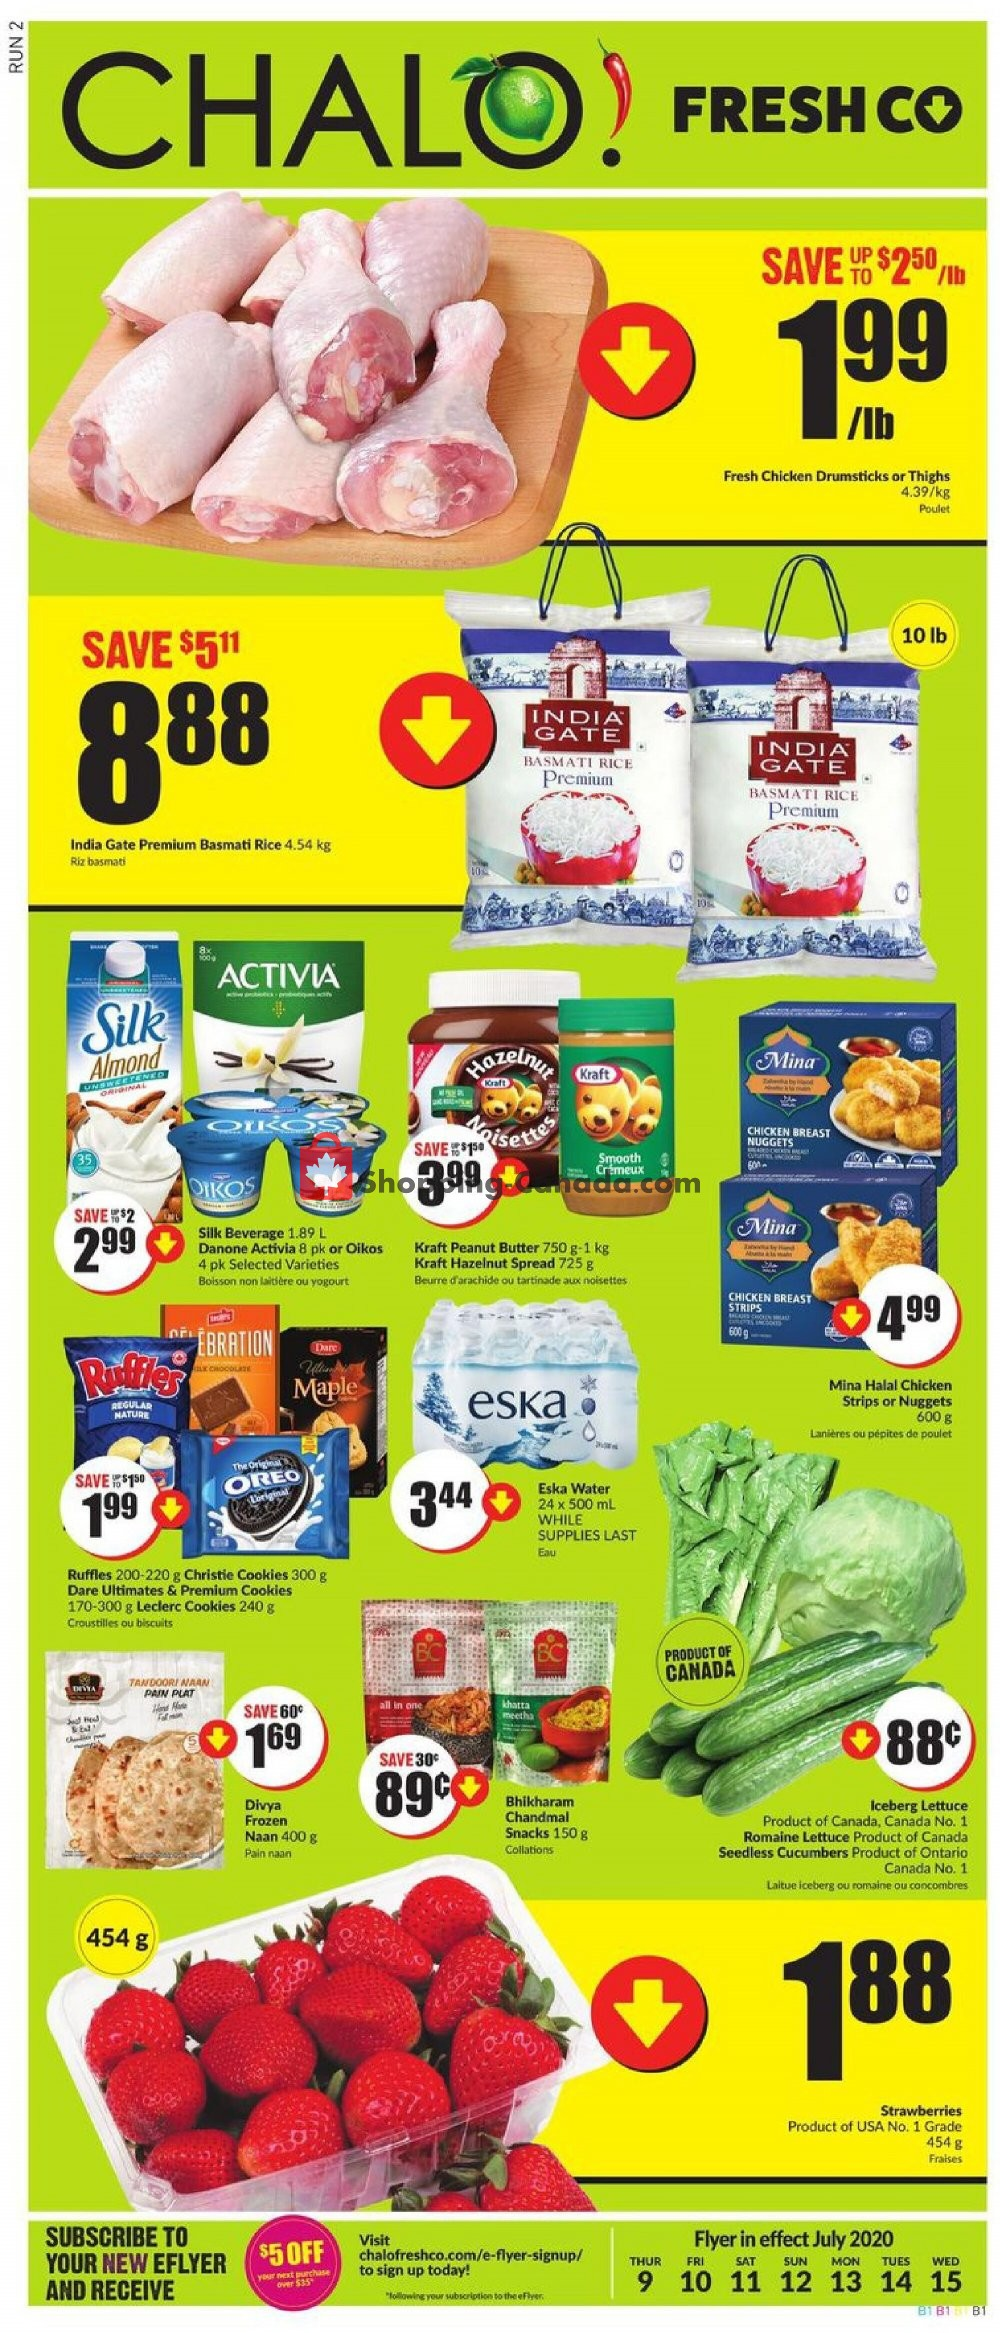 Flyer Chalo FreshCo Canada - from Thursday July 9, 2020 to Wednesday July 15, 2020